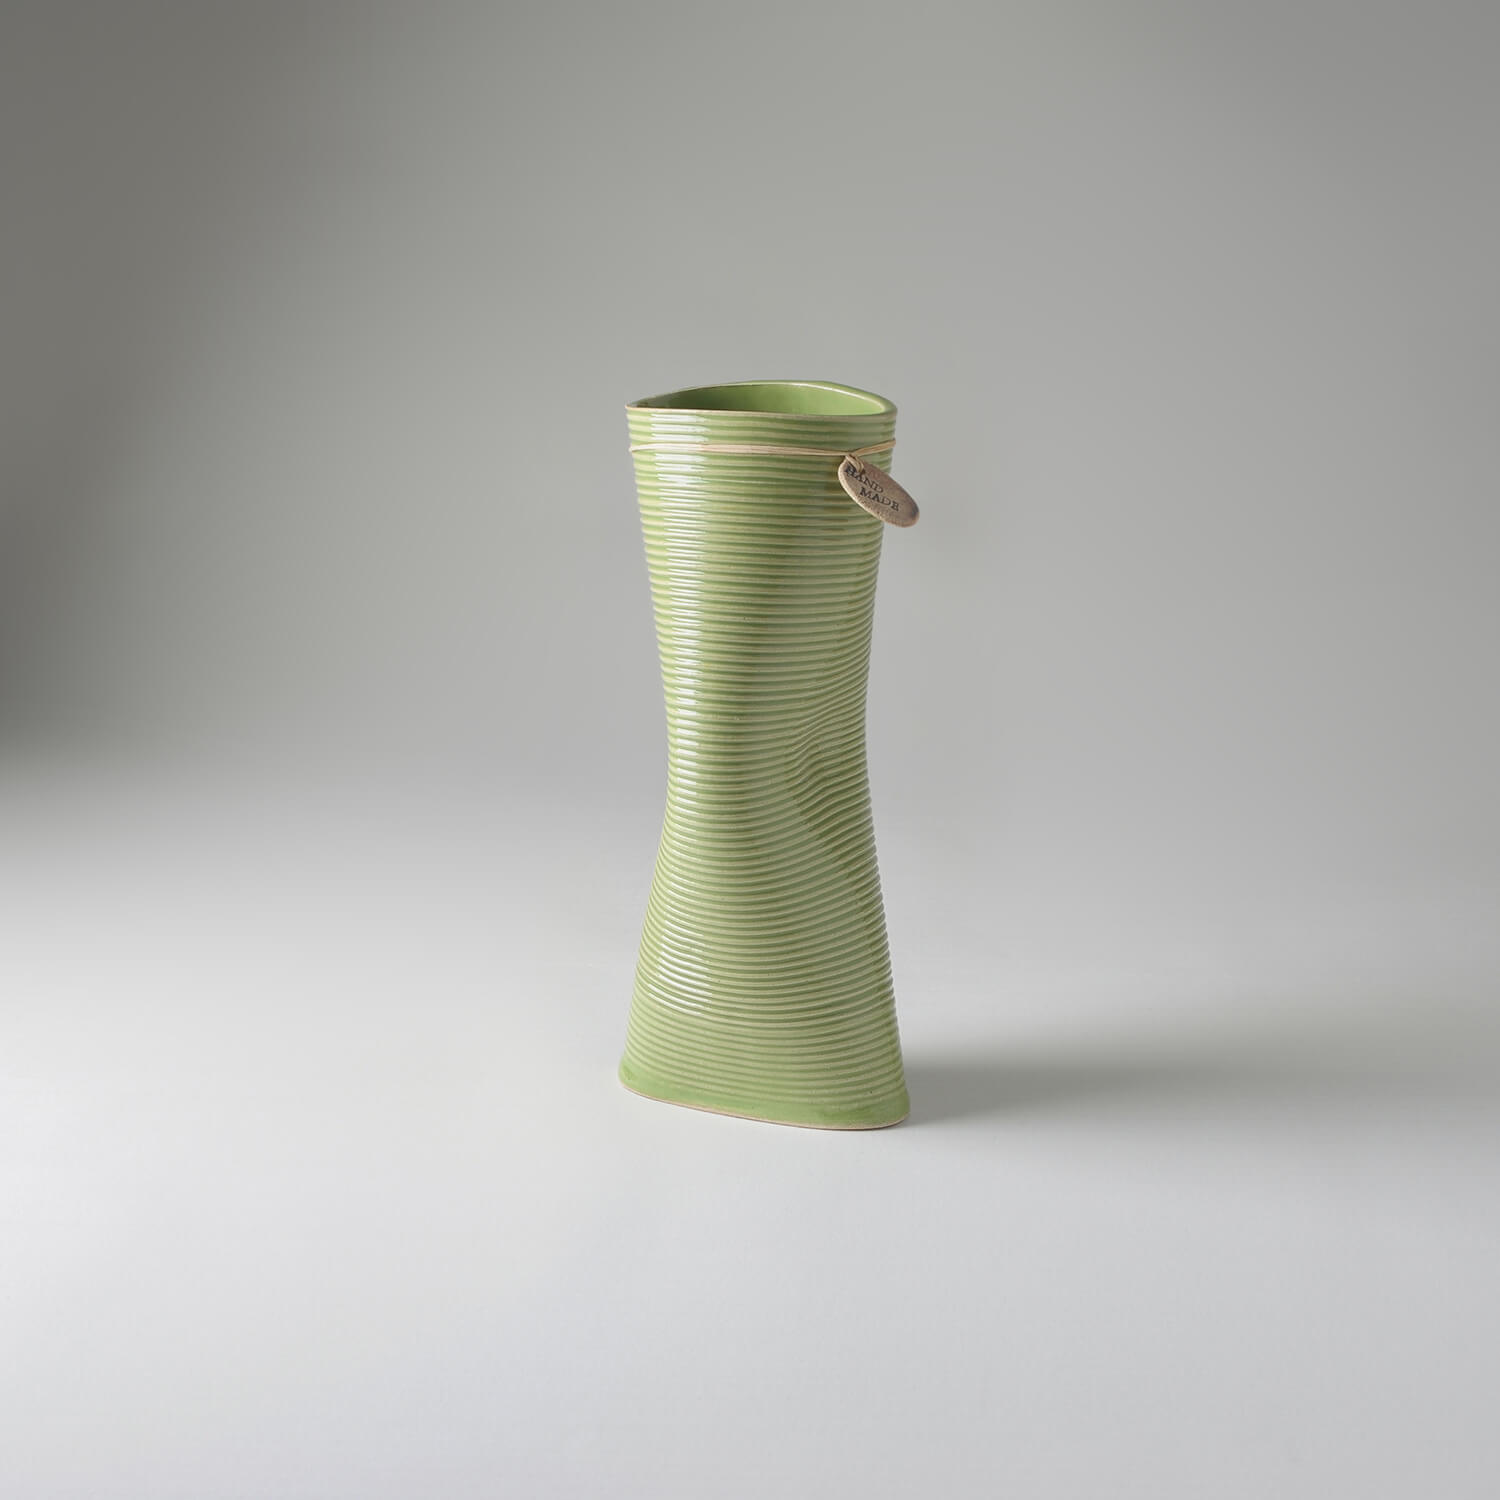 A handmade ceramic from Made in Yorkshire exhibitor Andrea Cundall photographed under studio lighting conditions